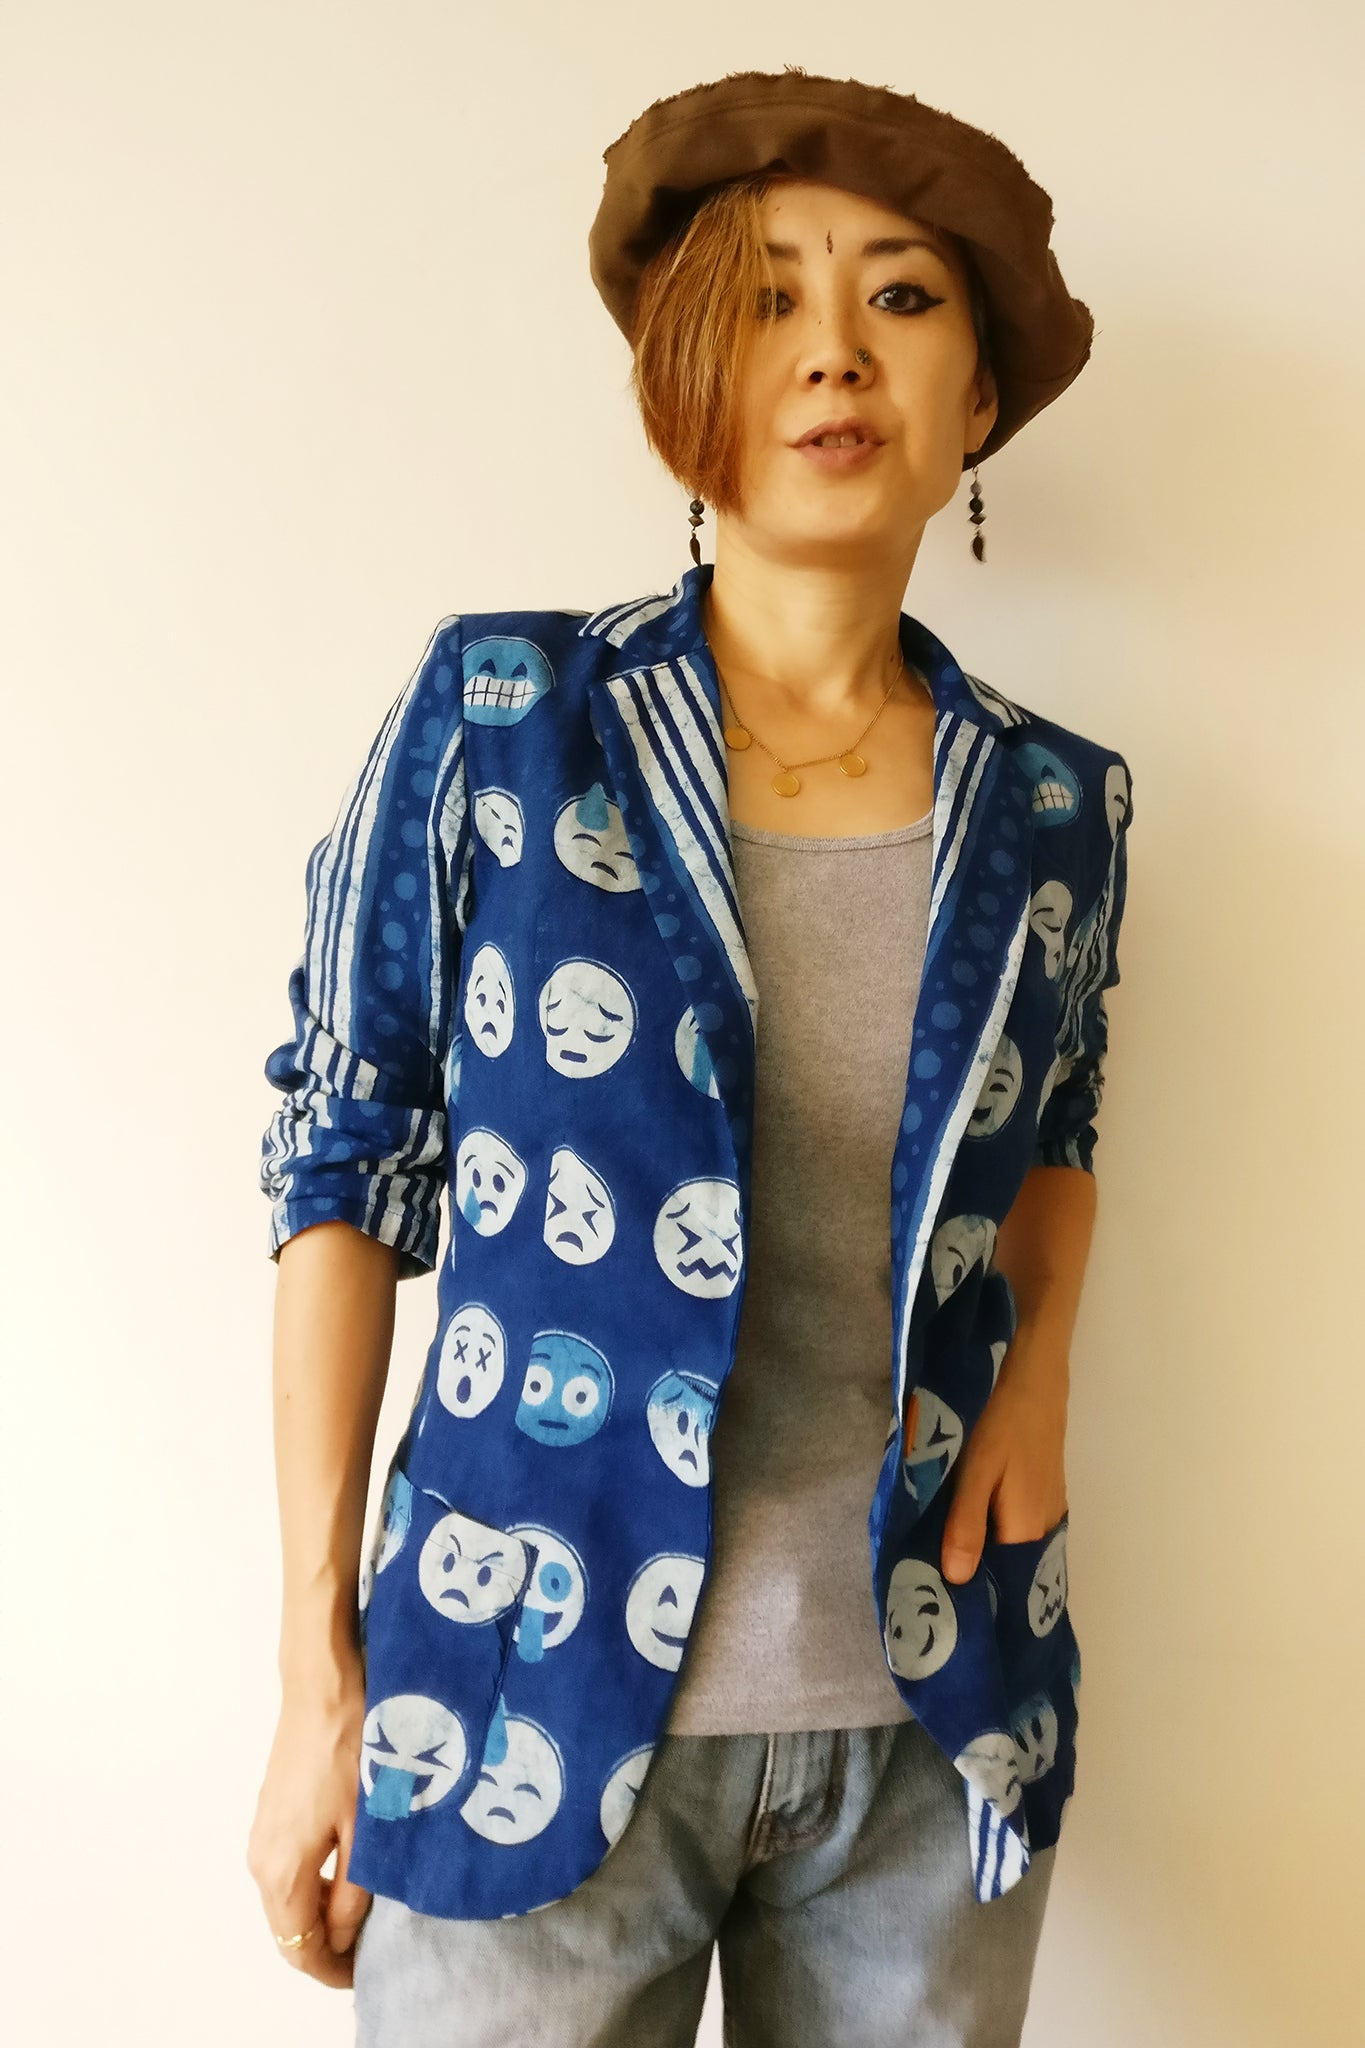 MIRCHI KOMACHI indigo cotton jacket with Emoji hand-printed is a cute fun casual item for ladies. Social media professional? Emoji expert? This is for you! Shop online!